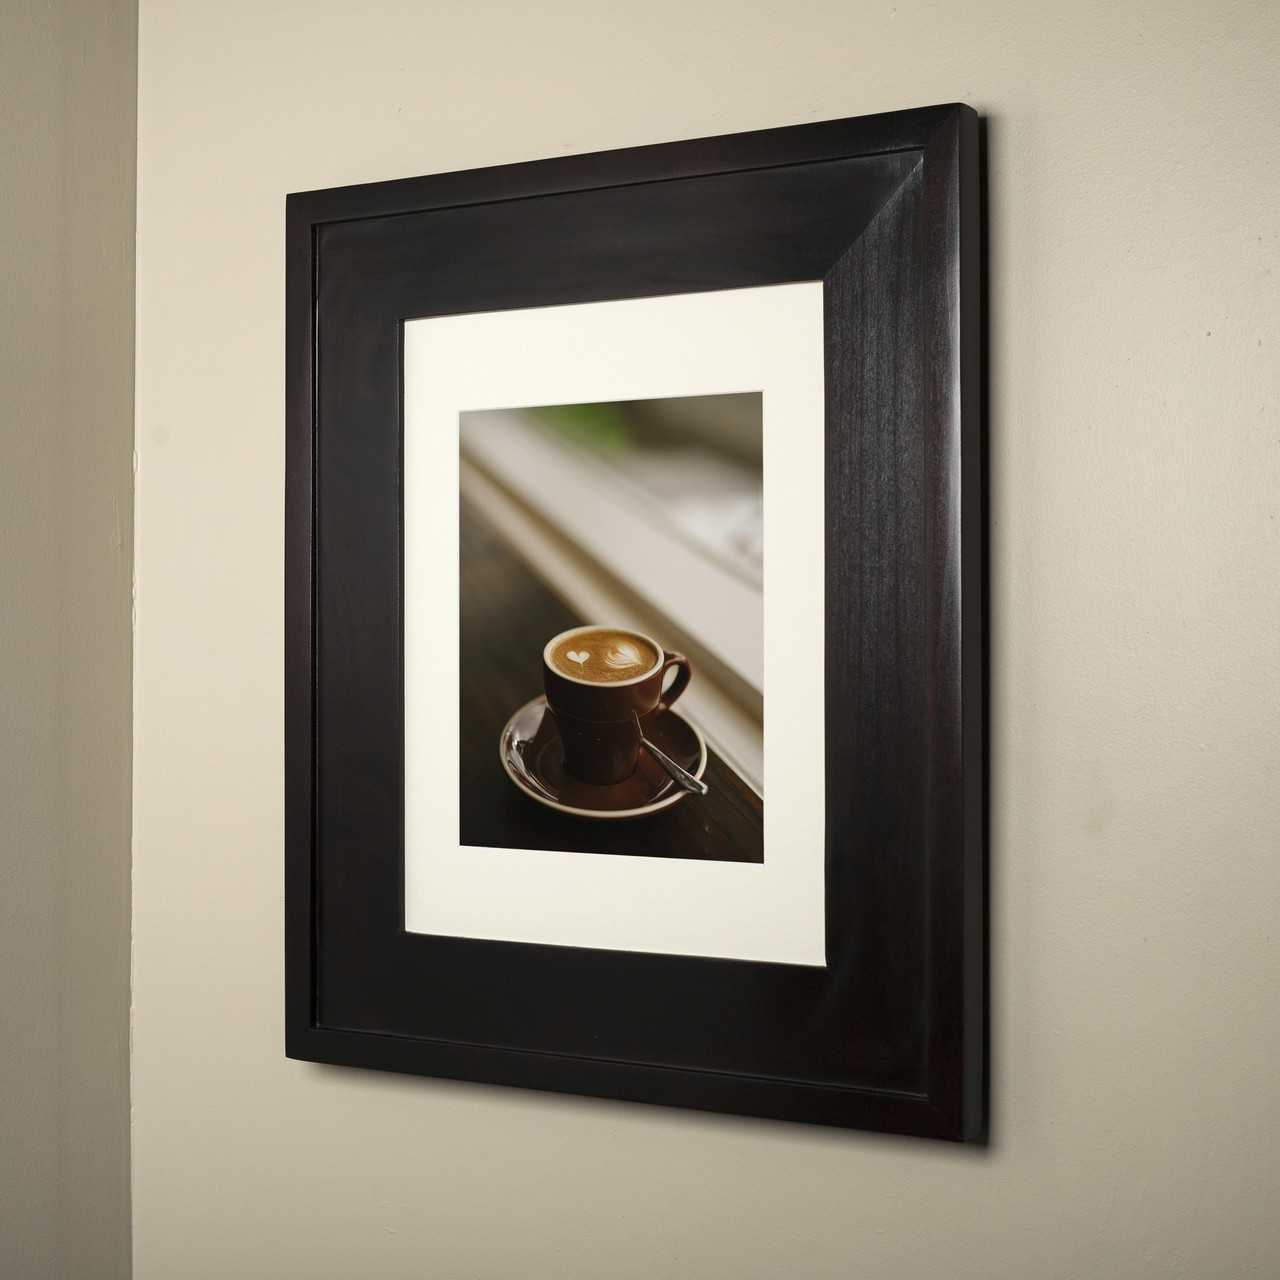 14x18 Coffee Bean Concealed Cabinet   Recessed Medicine Cabinet With A  Picture Frame Door